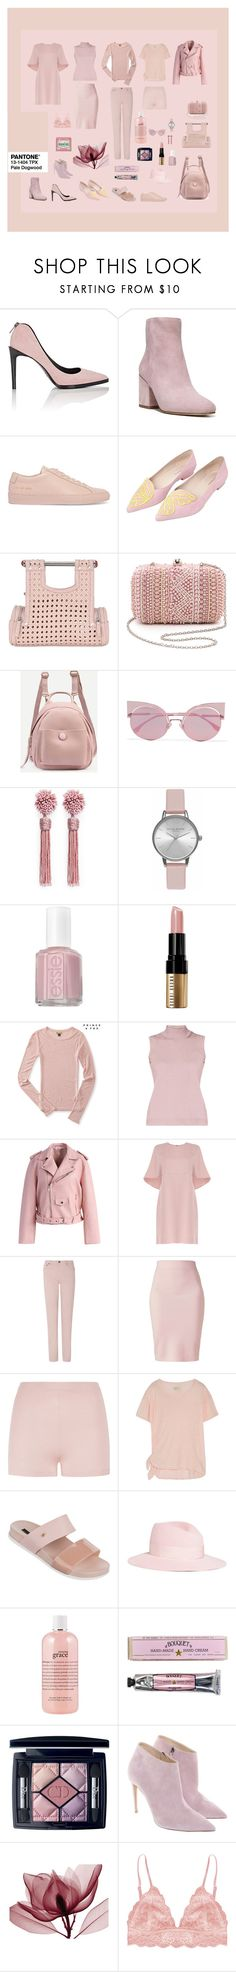 Pantone 13-1404 Pale Dogwood by sophie-poualion on Polyvore featuring Valentino, Current/Elliott, Rumour London, Aéropostale, Chicwish, L.K.Bennett, Winser London, Humble Chic, Helmut Lang and Sophia Webster